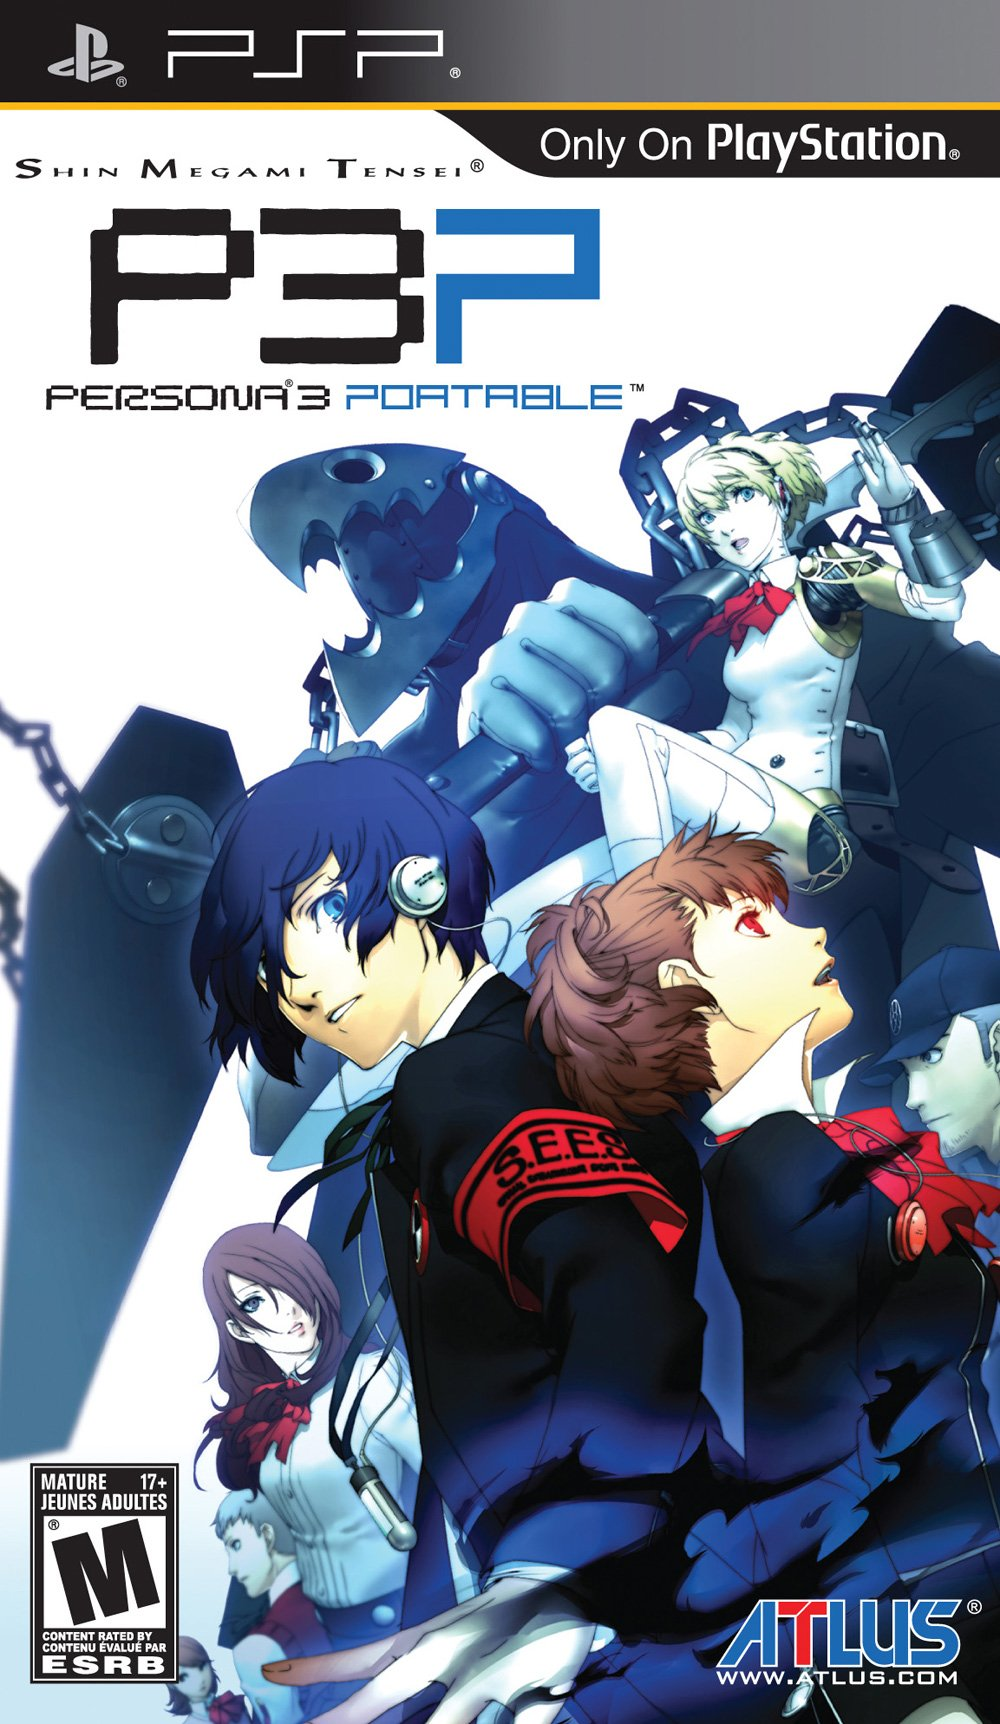 Persona 3 dating gifts for men